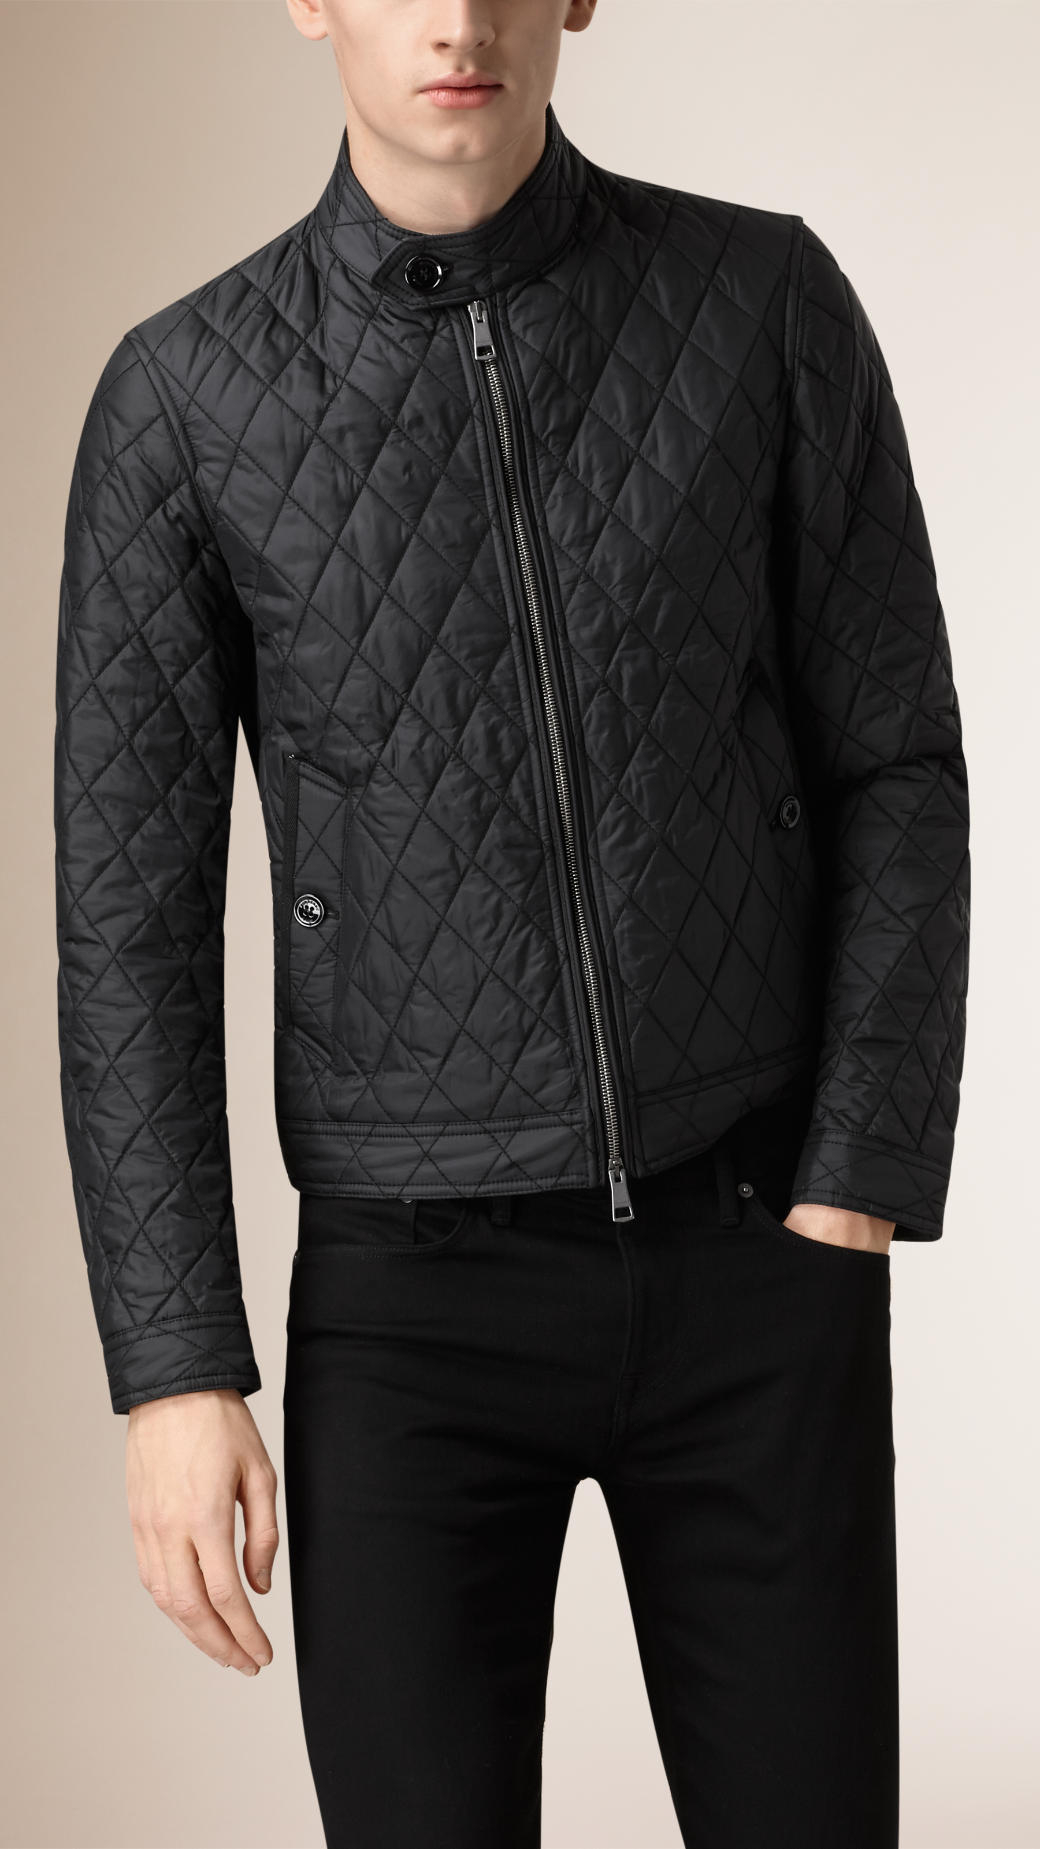 Lyst Burberry Diamond Quilted Harrington Jacket In Black For Men